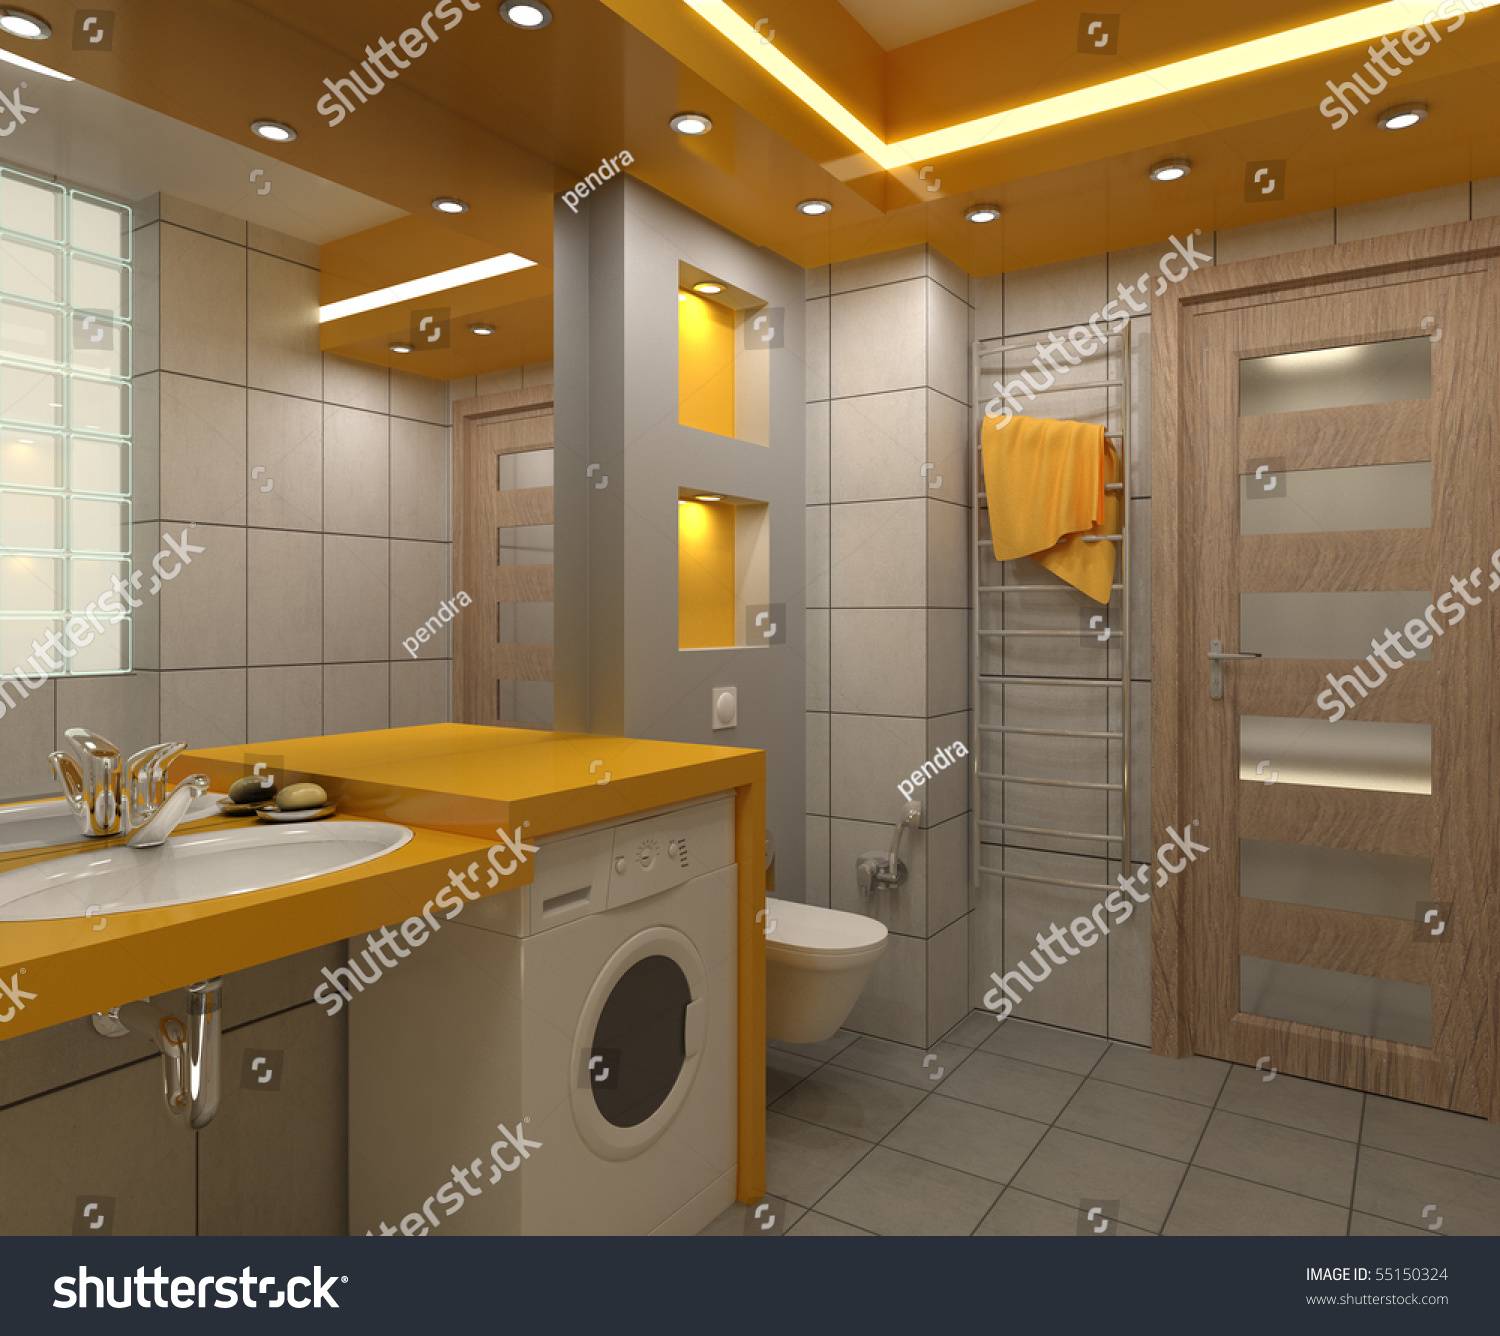 Yellow Bathroom Tile: Bathroom With Toilet And Shower In The Yellow Tile Stock